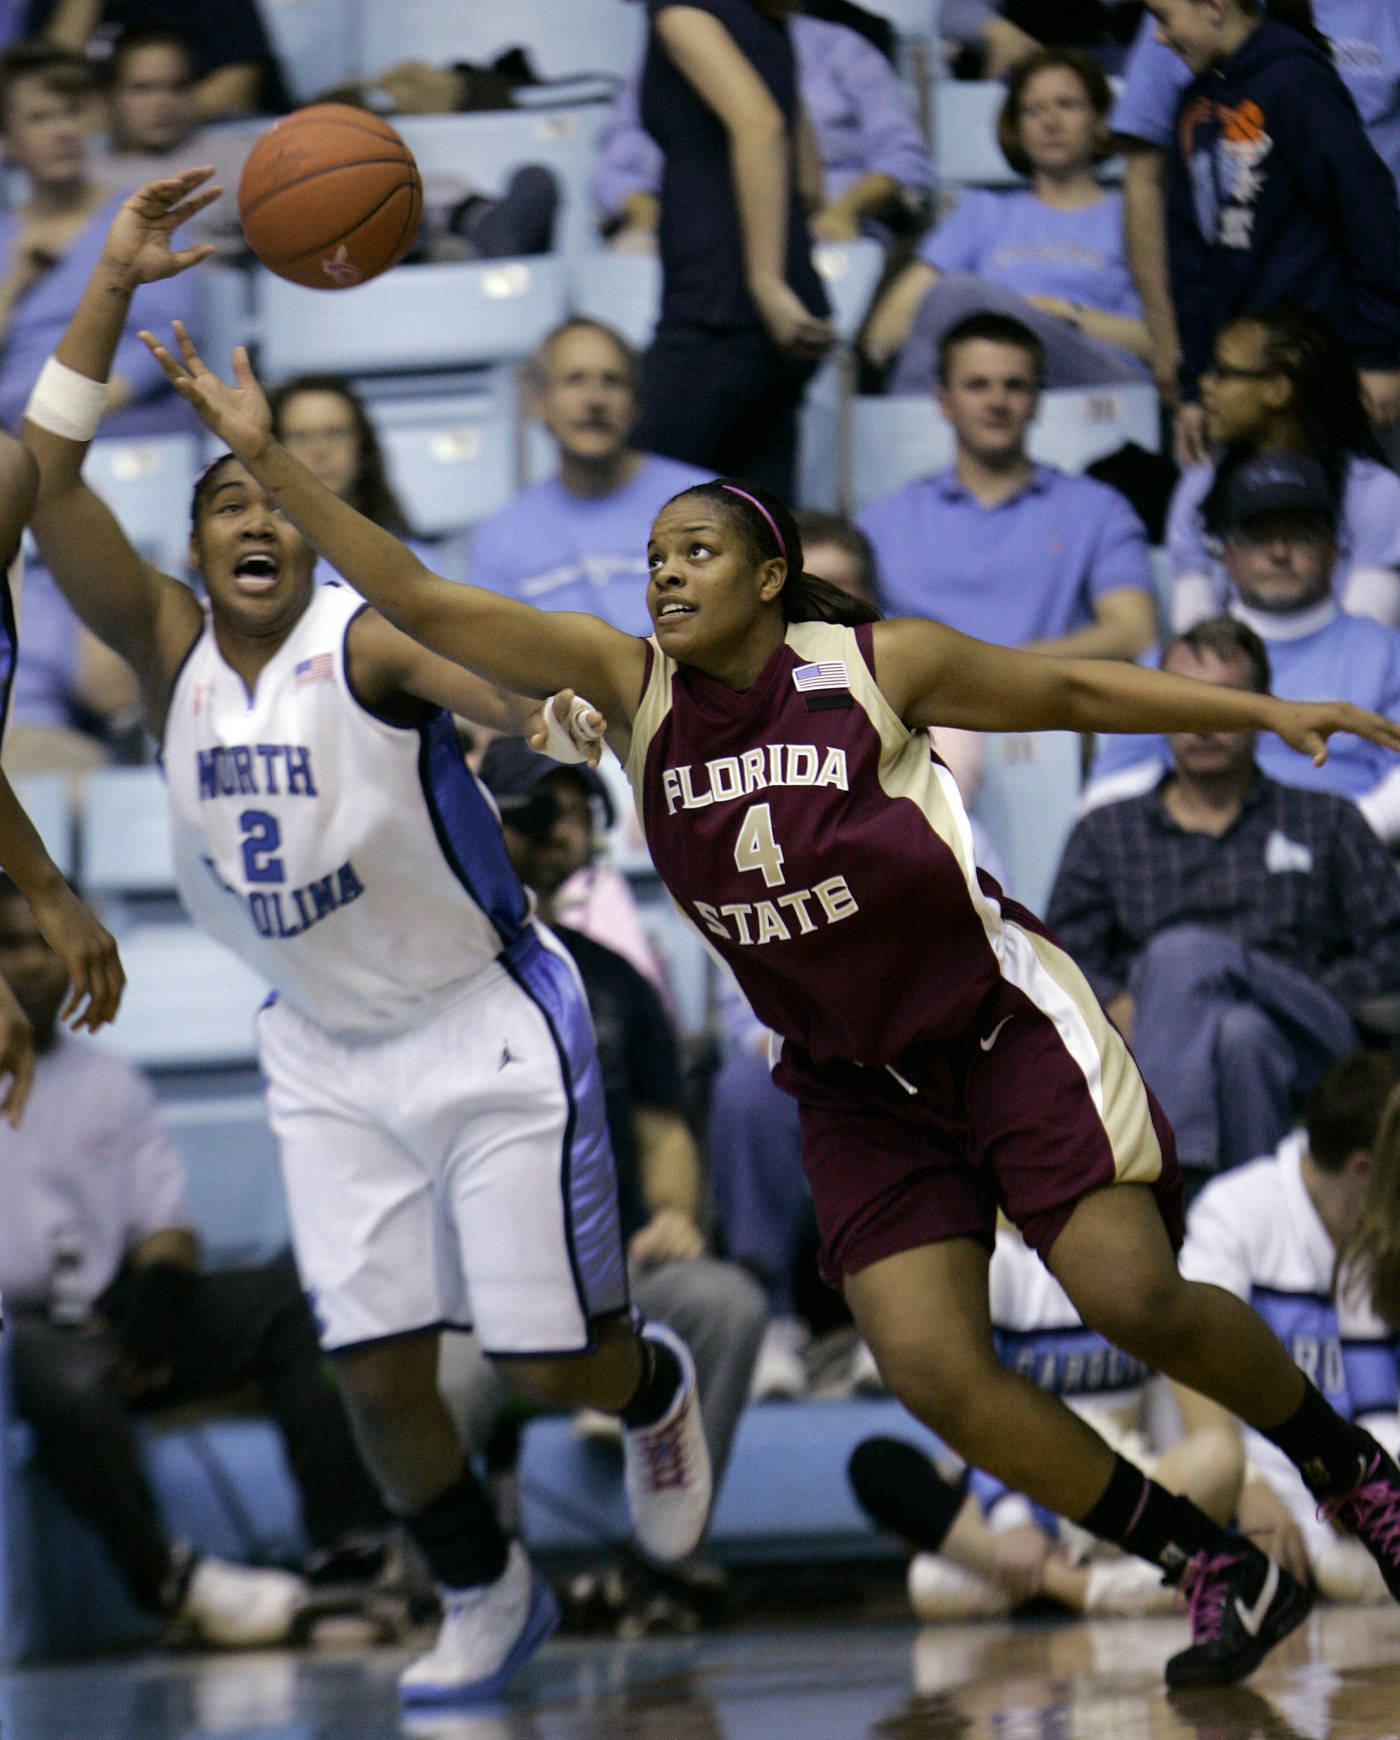 North Carolina's Erlana Larkins (2) and Florida State's Cayla Moore (4) battle for a rebound during the second half of a college basketball game in Chapel Hill, N.C., Sunday, Feb. 17, 2008. North Carolina won, 97-77. (AP Photo/Gerry Broome)